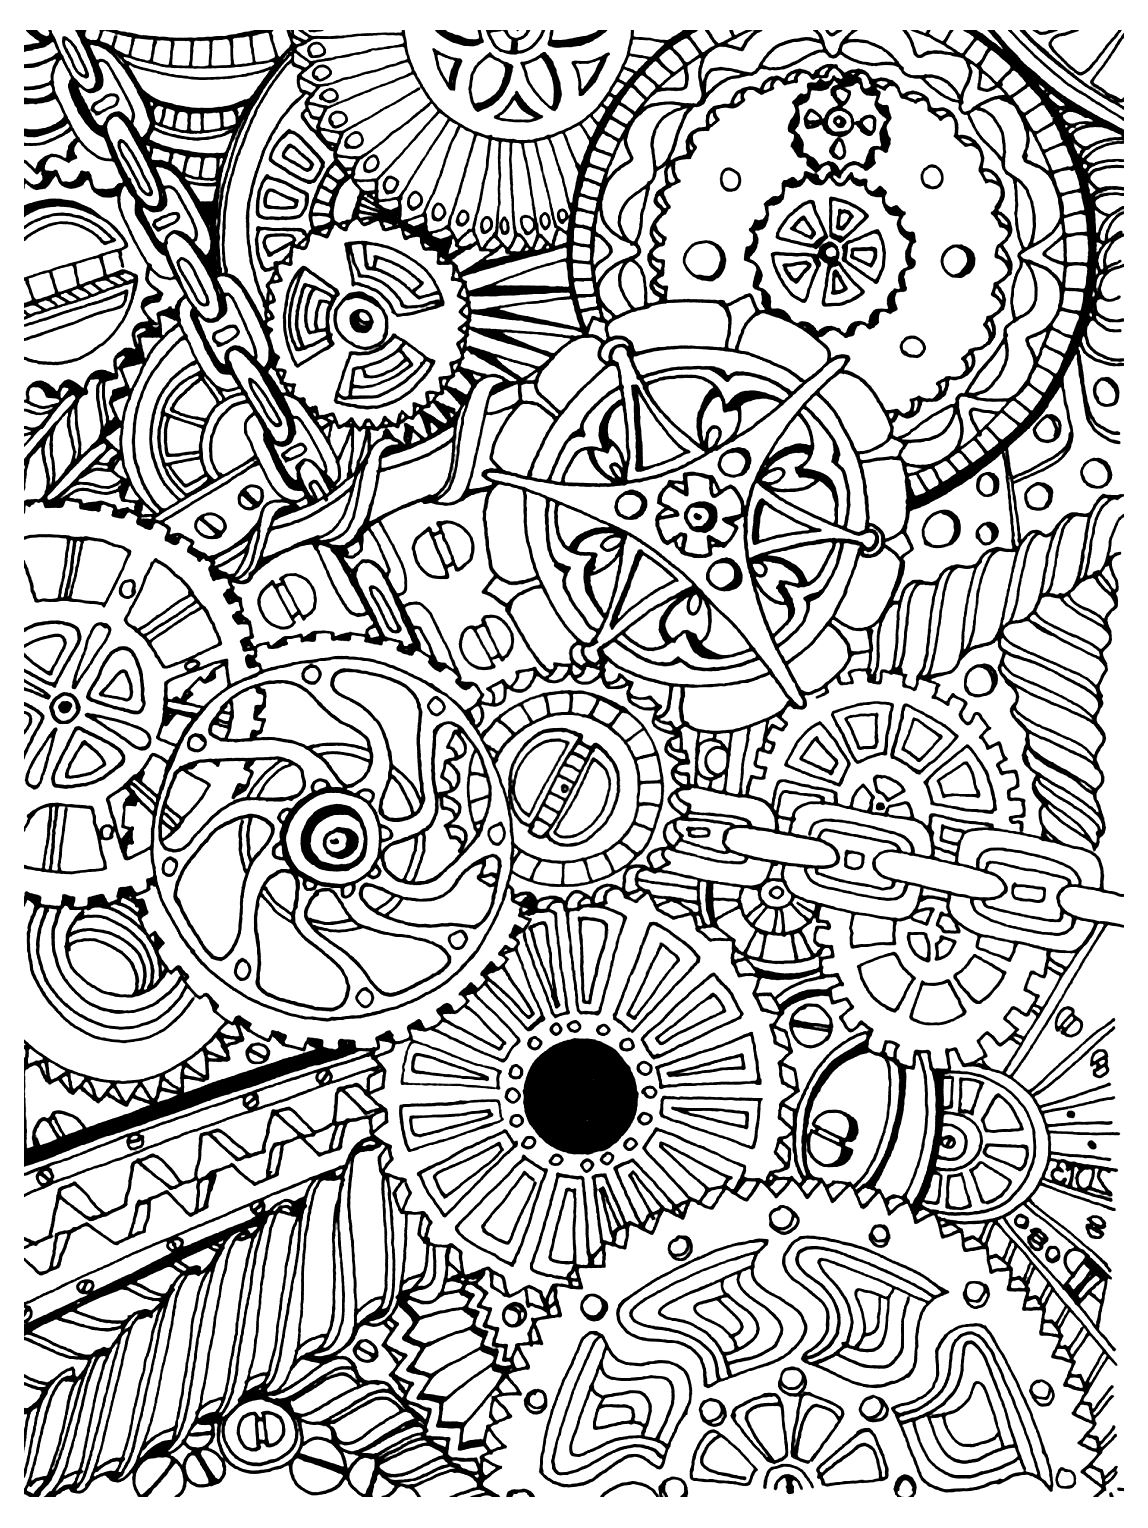 Anti-stress #126909 (Relaxation) - Printable coloring pages